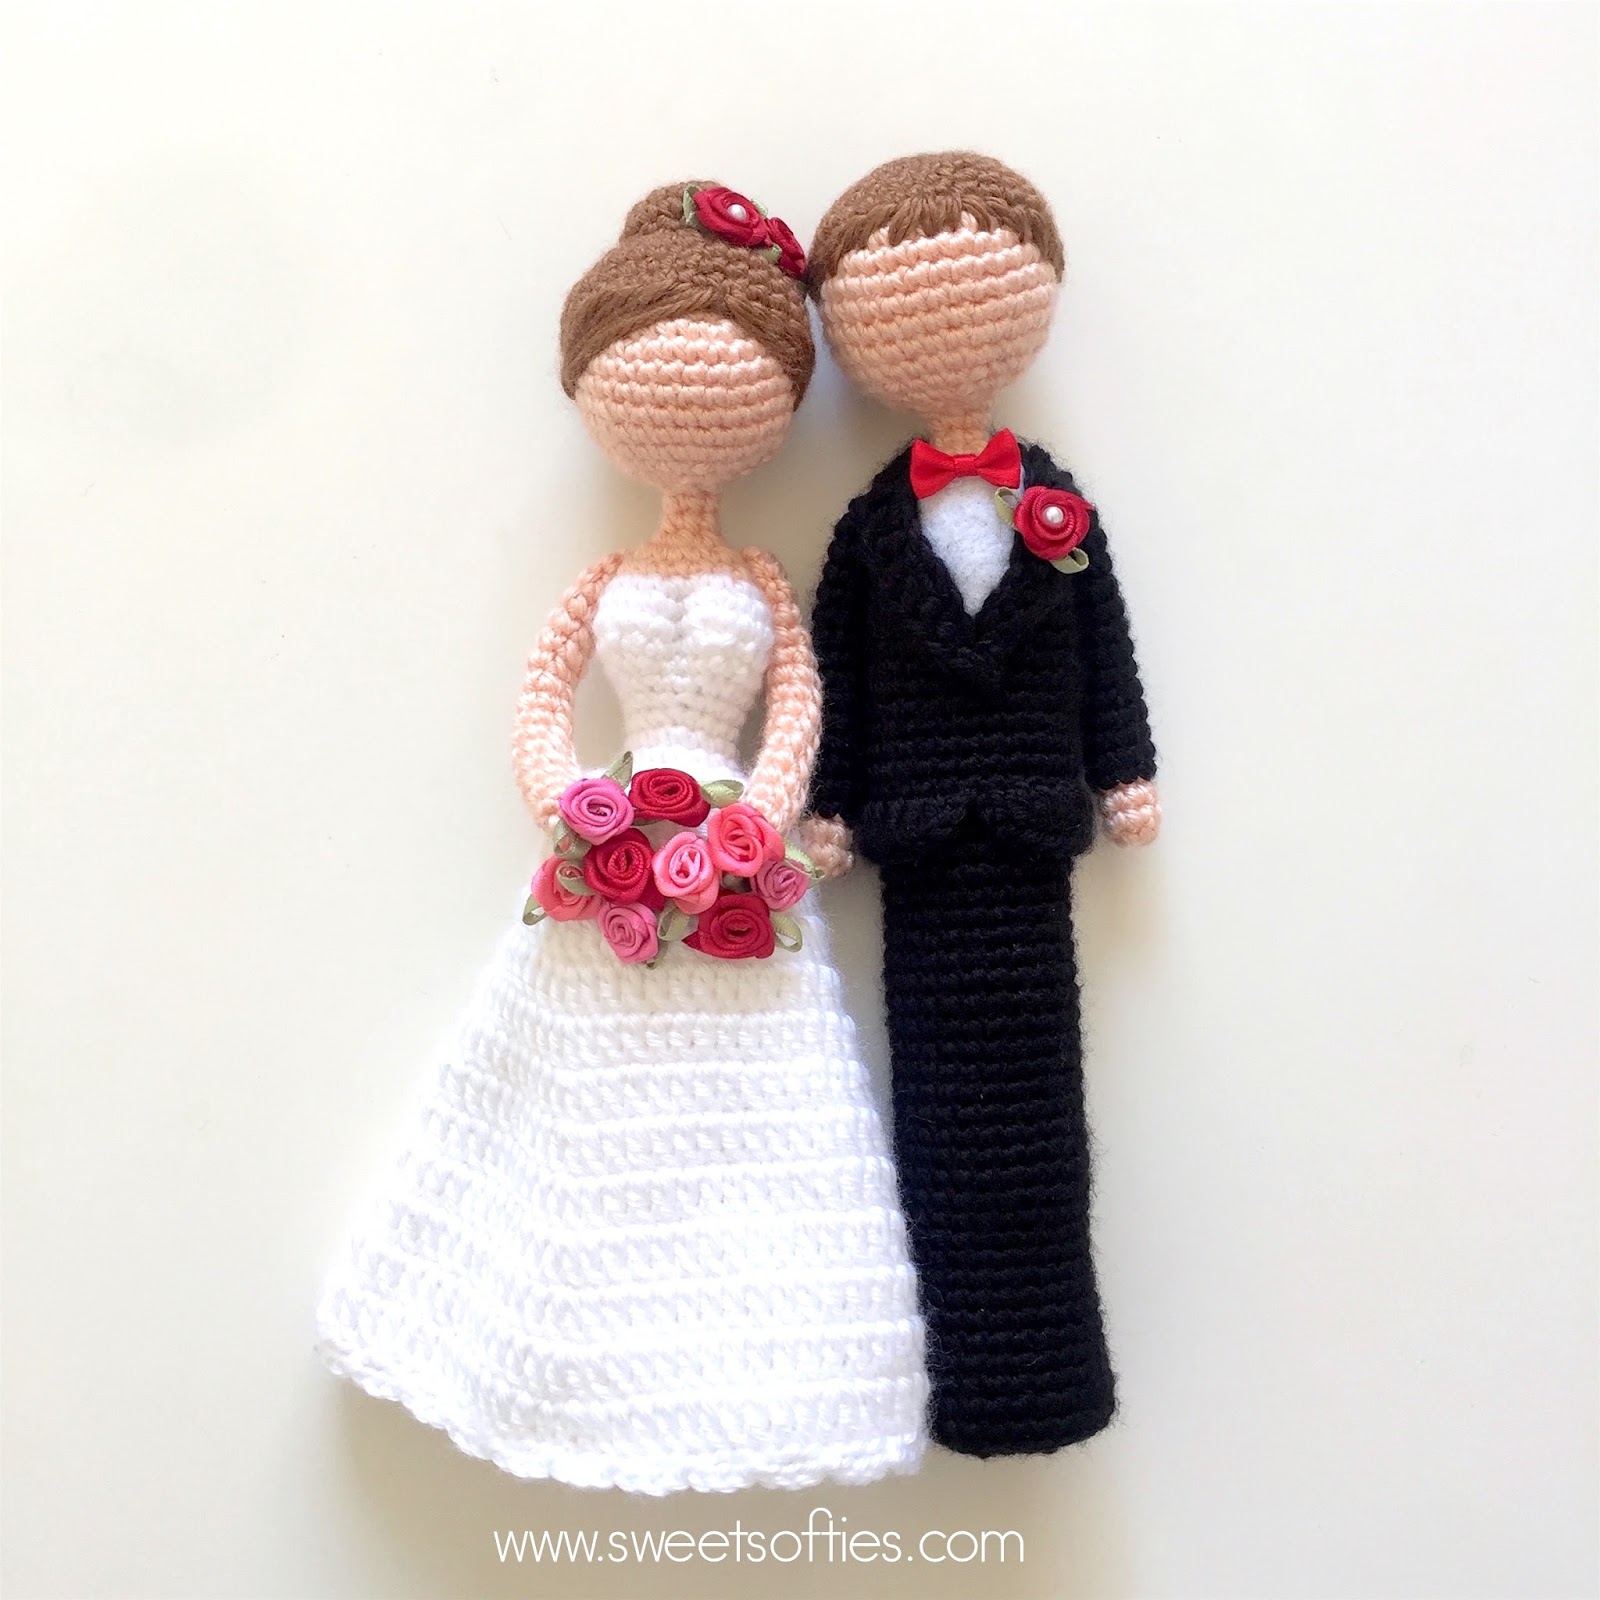 Knitted Bride And Groom Cake Topper Pattern